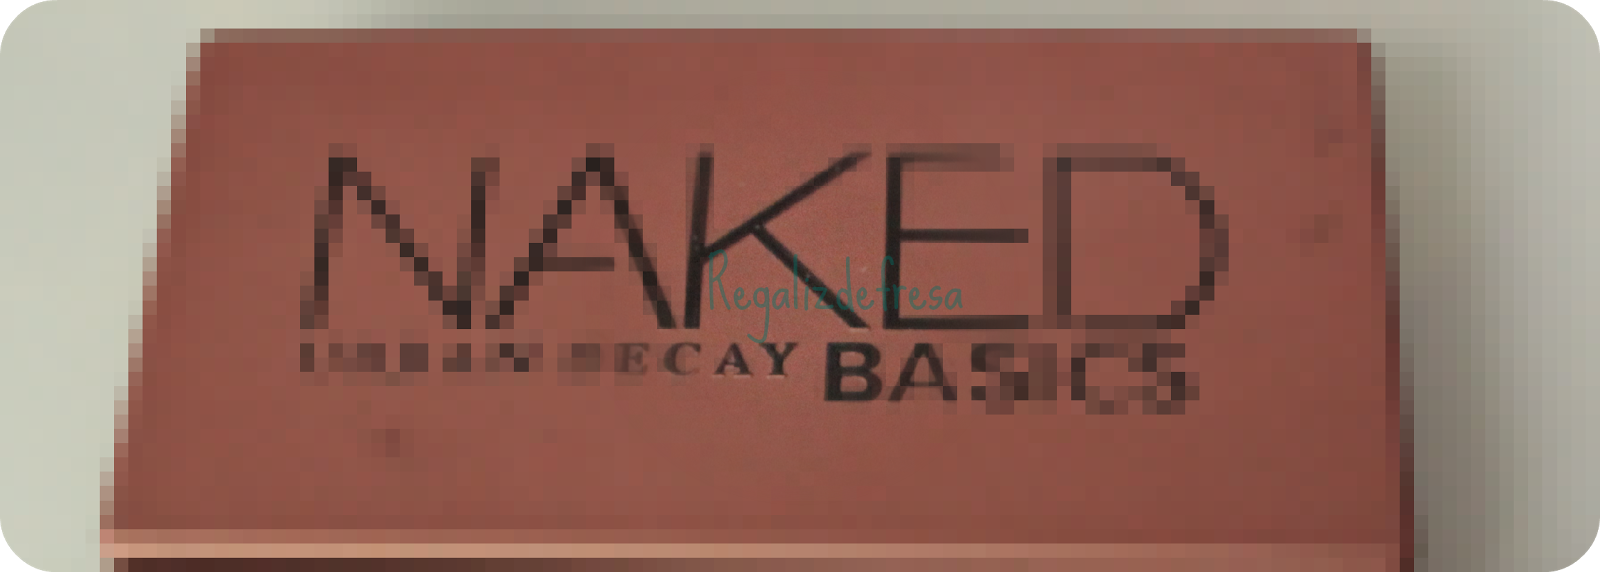 Naked Basic Fake